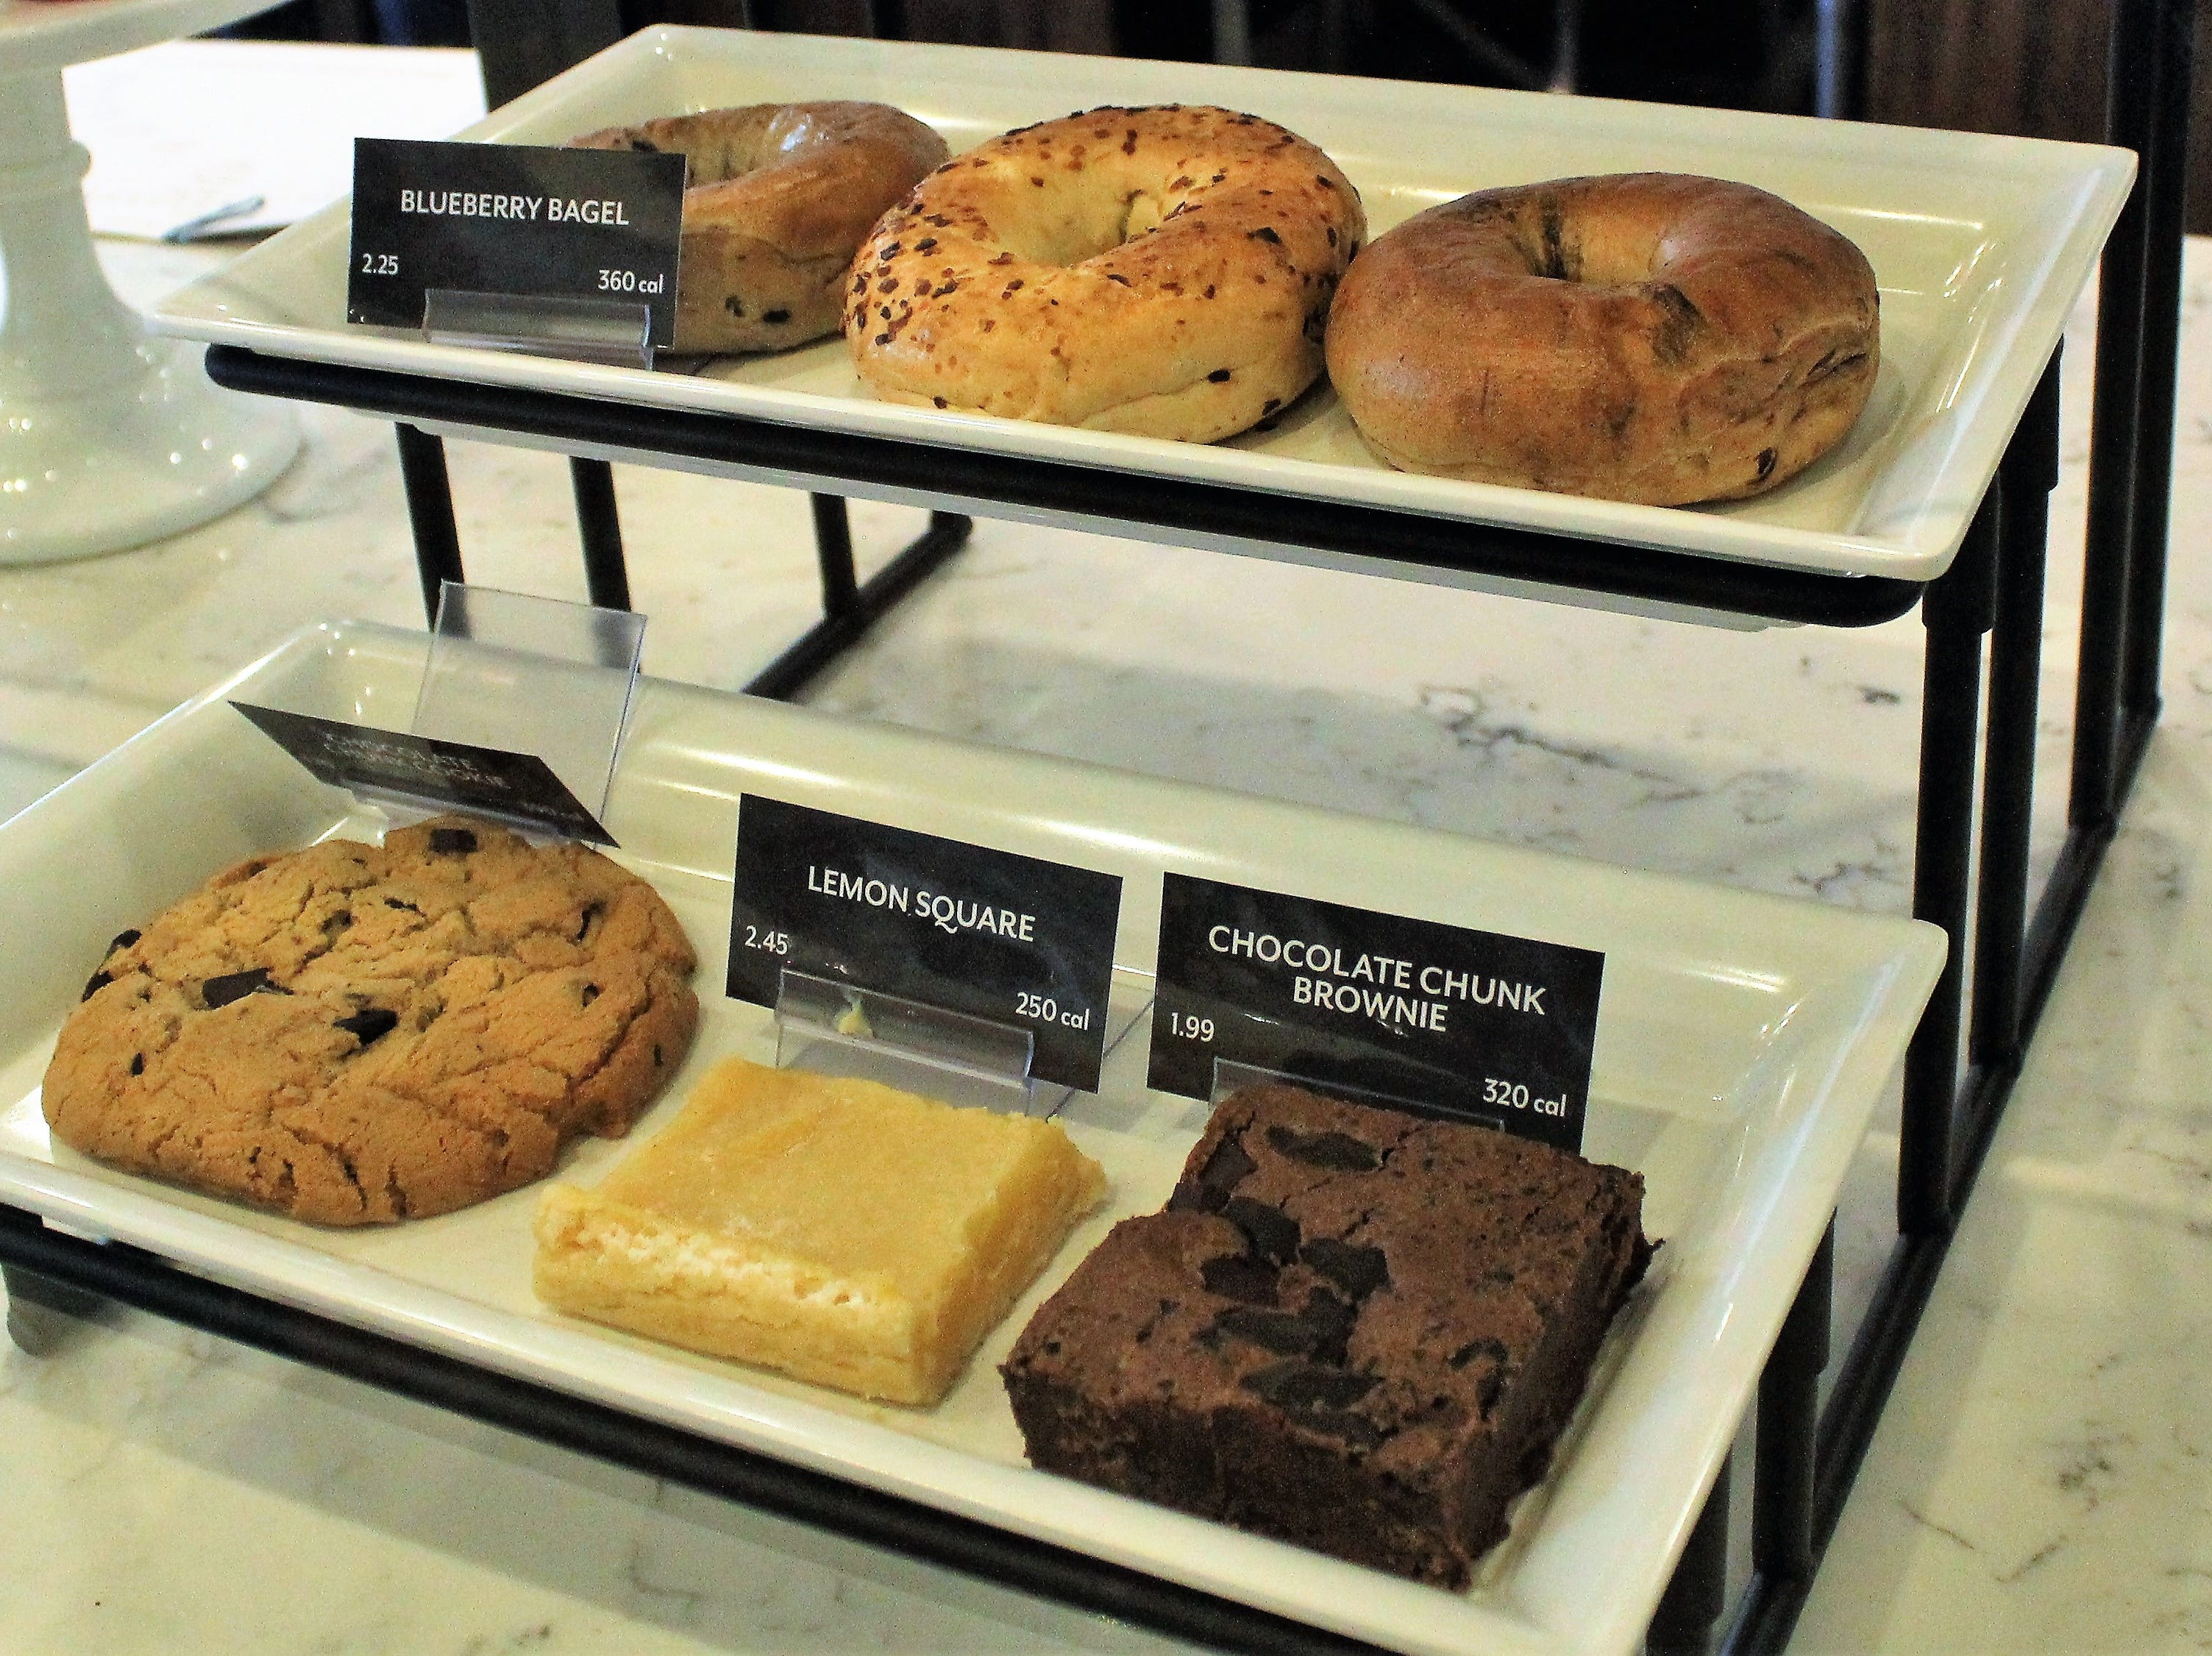 Bakery items on display at PJ's Coffee